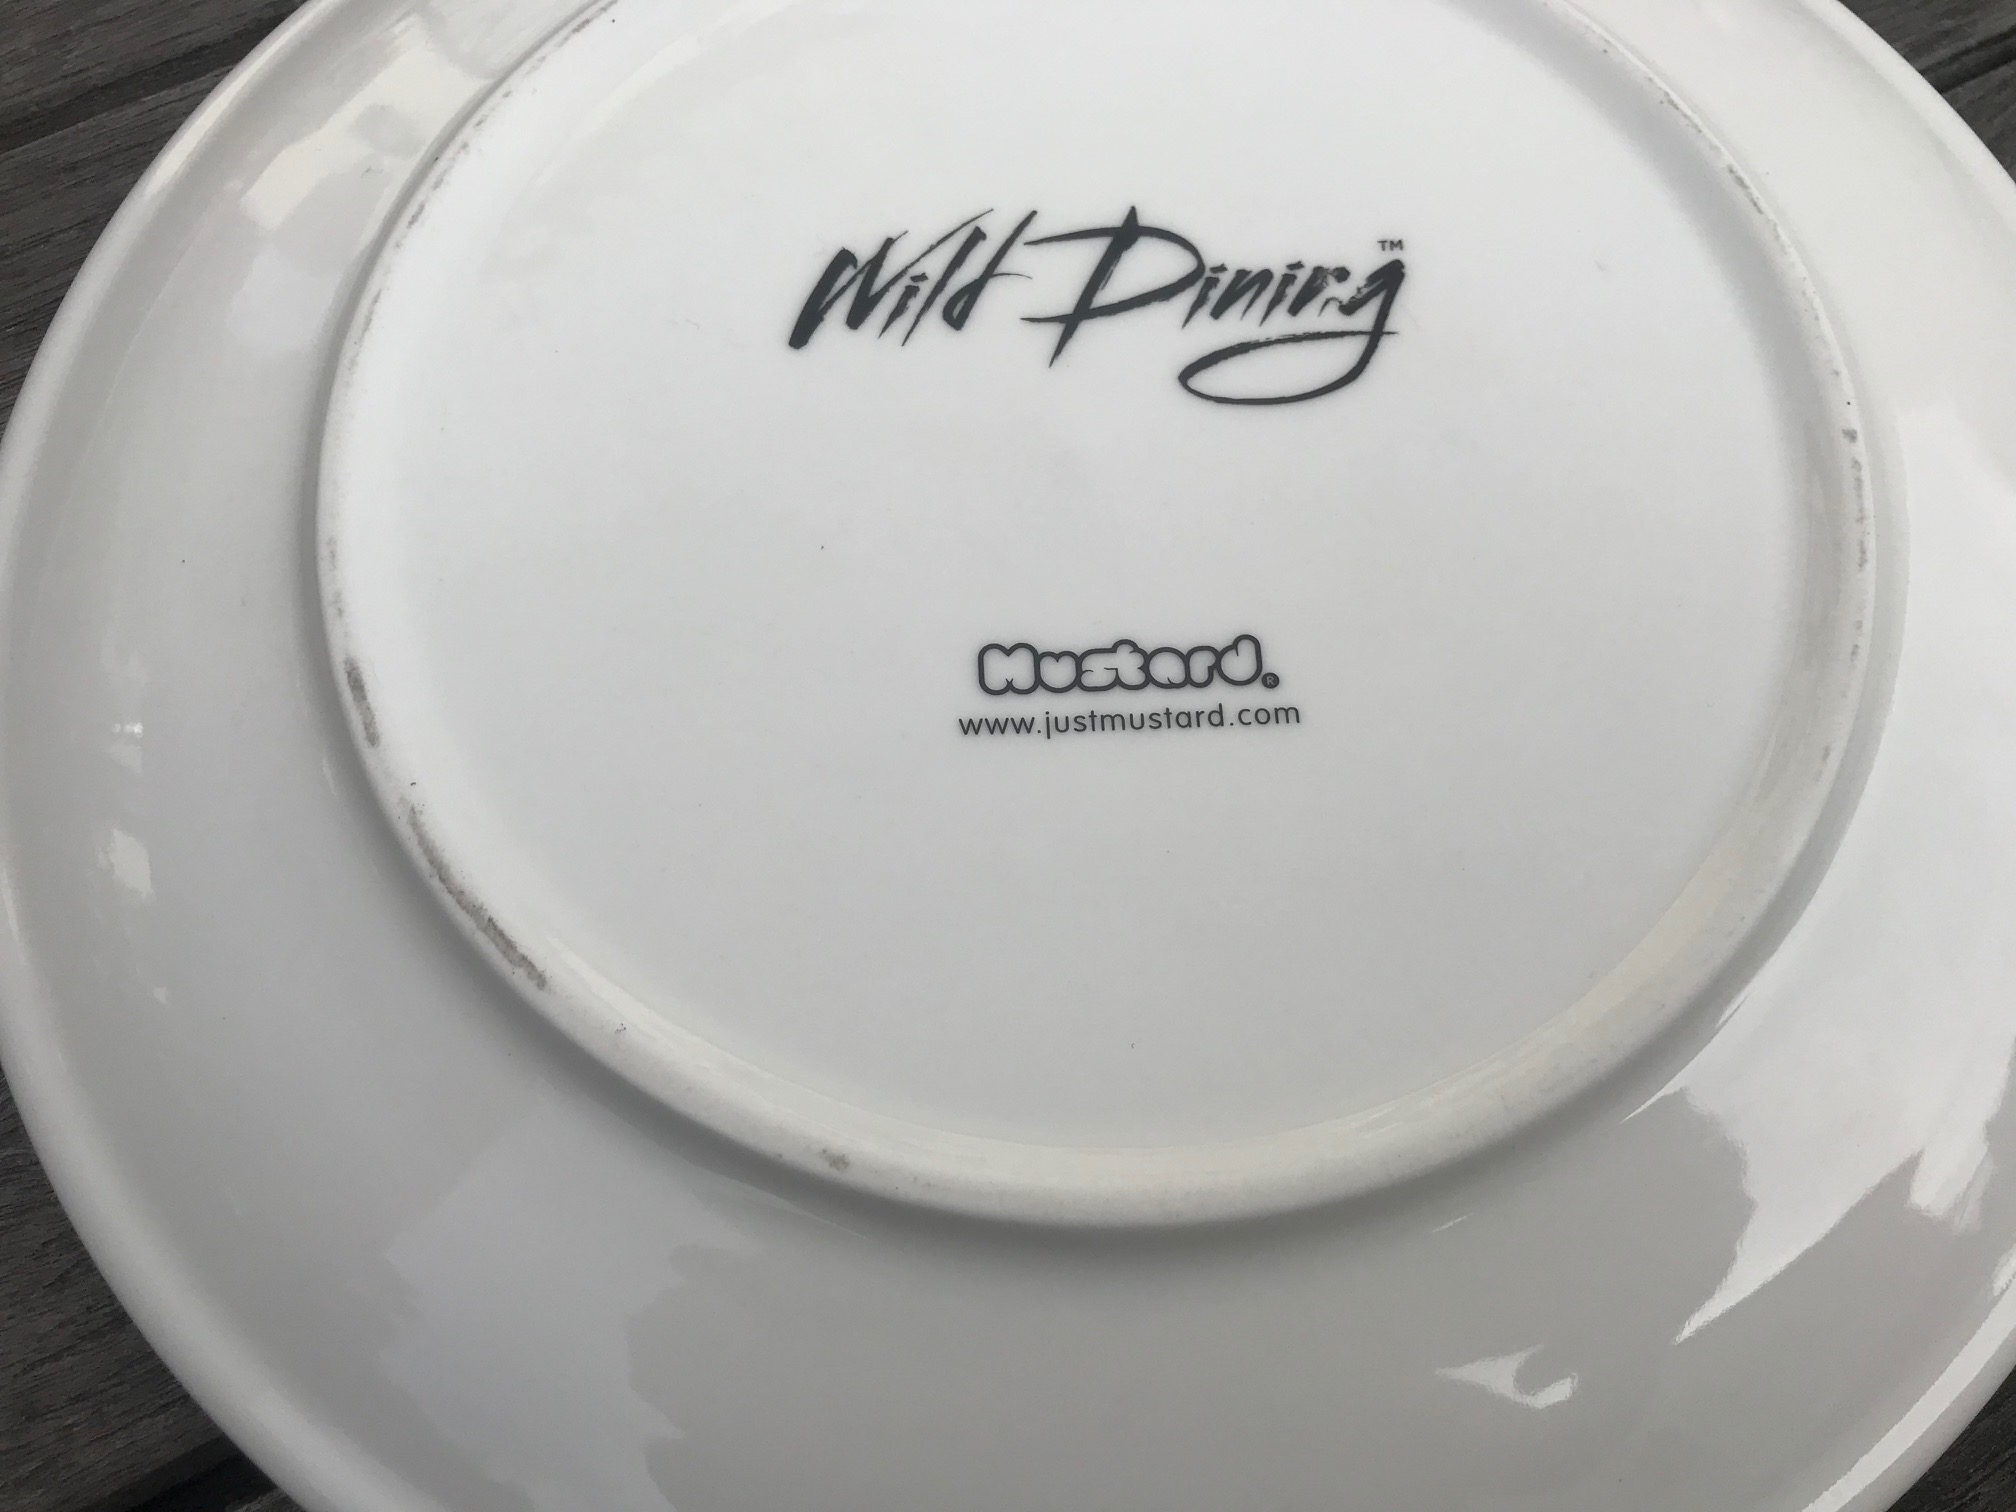 "New Wild Dining ""JustMustard"" Brand Larry Lion Plate: 34,300 ppm Lead + Cadmium too!"